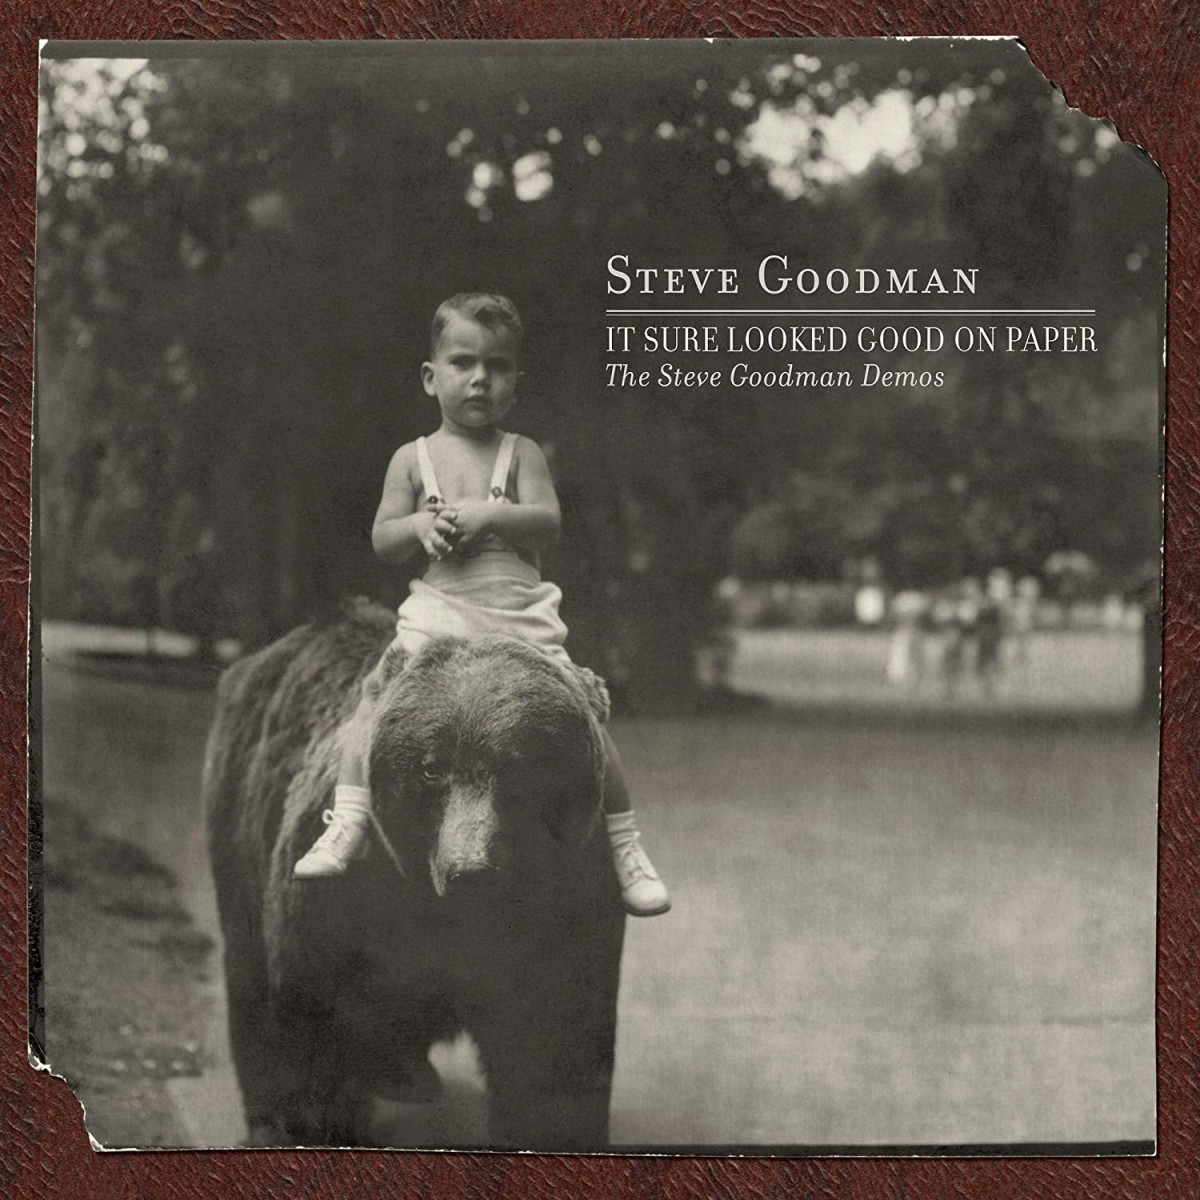 It Sure Looked Good on Paper- The Steve Goodman Demos